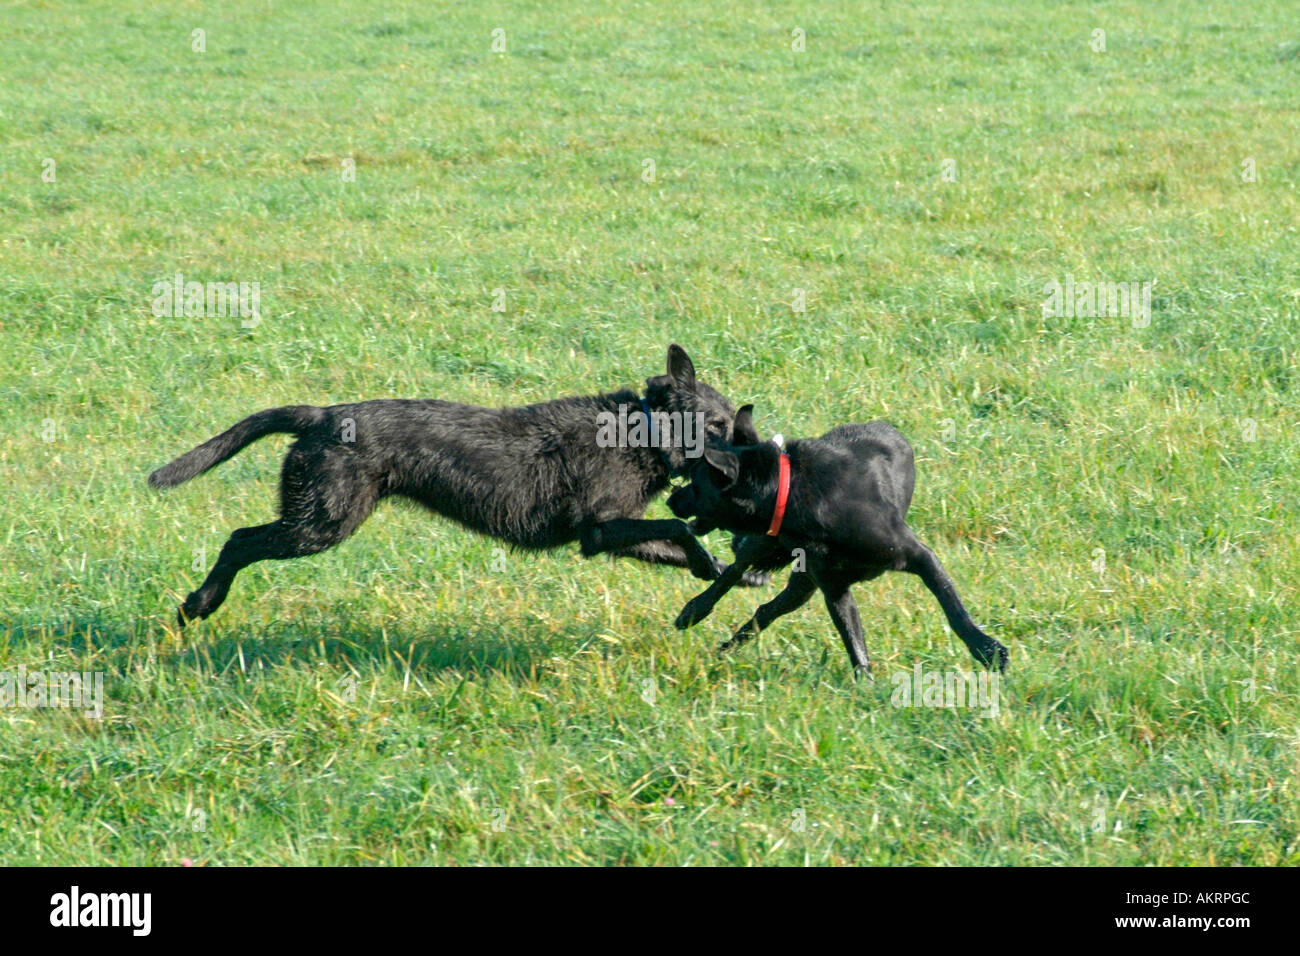 two hybrid dogs playing together on a meadow black Labrador Border Collie mix and black Schnautzer mix - Stock Image